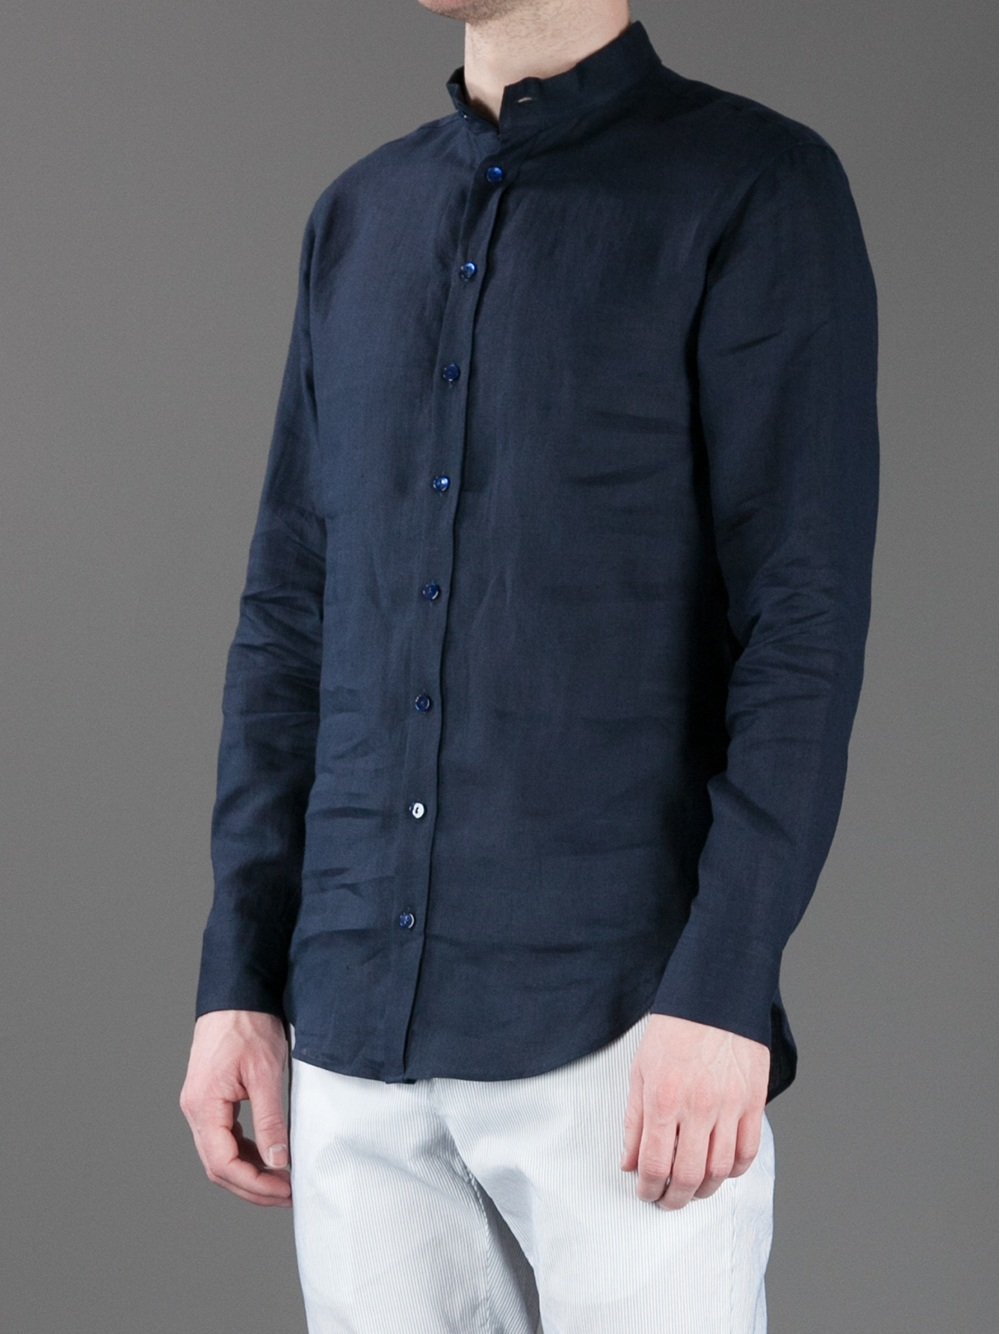 Giorgio armani Collarless Button Down Shirt in Black for Men | Lyst